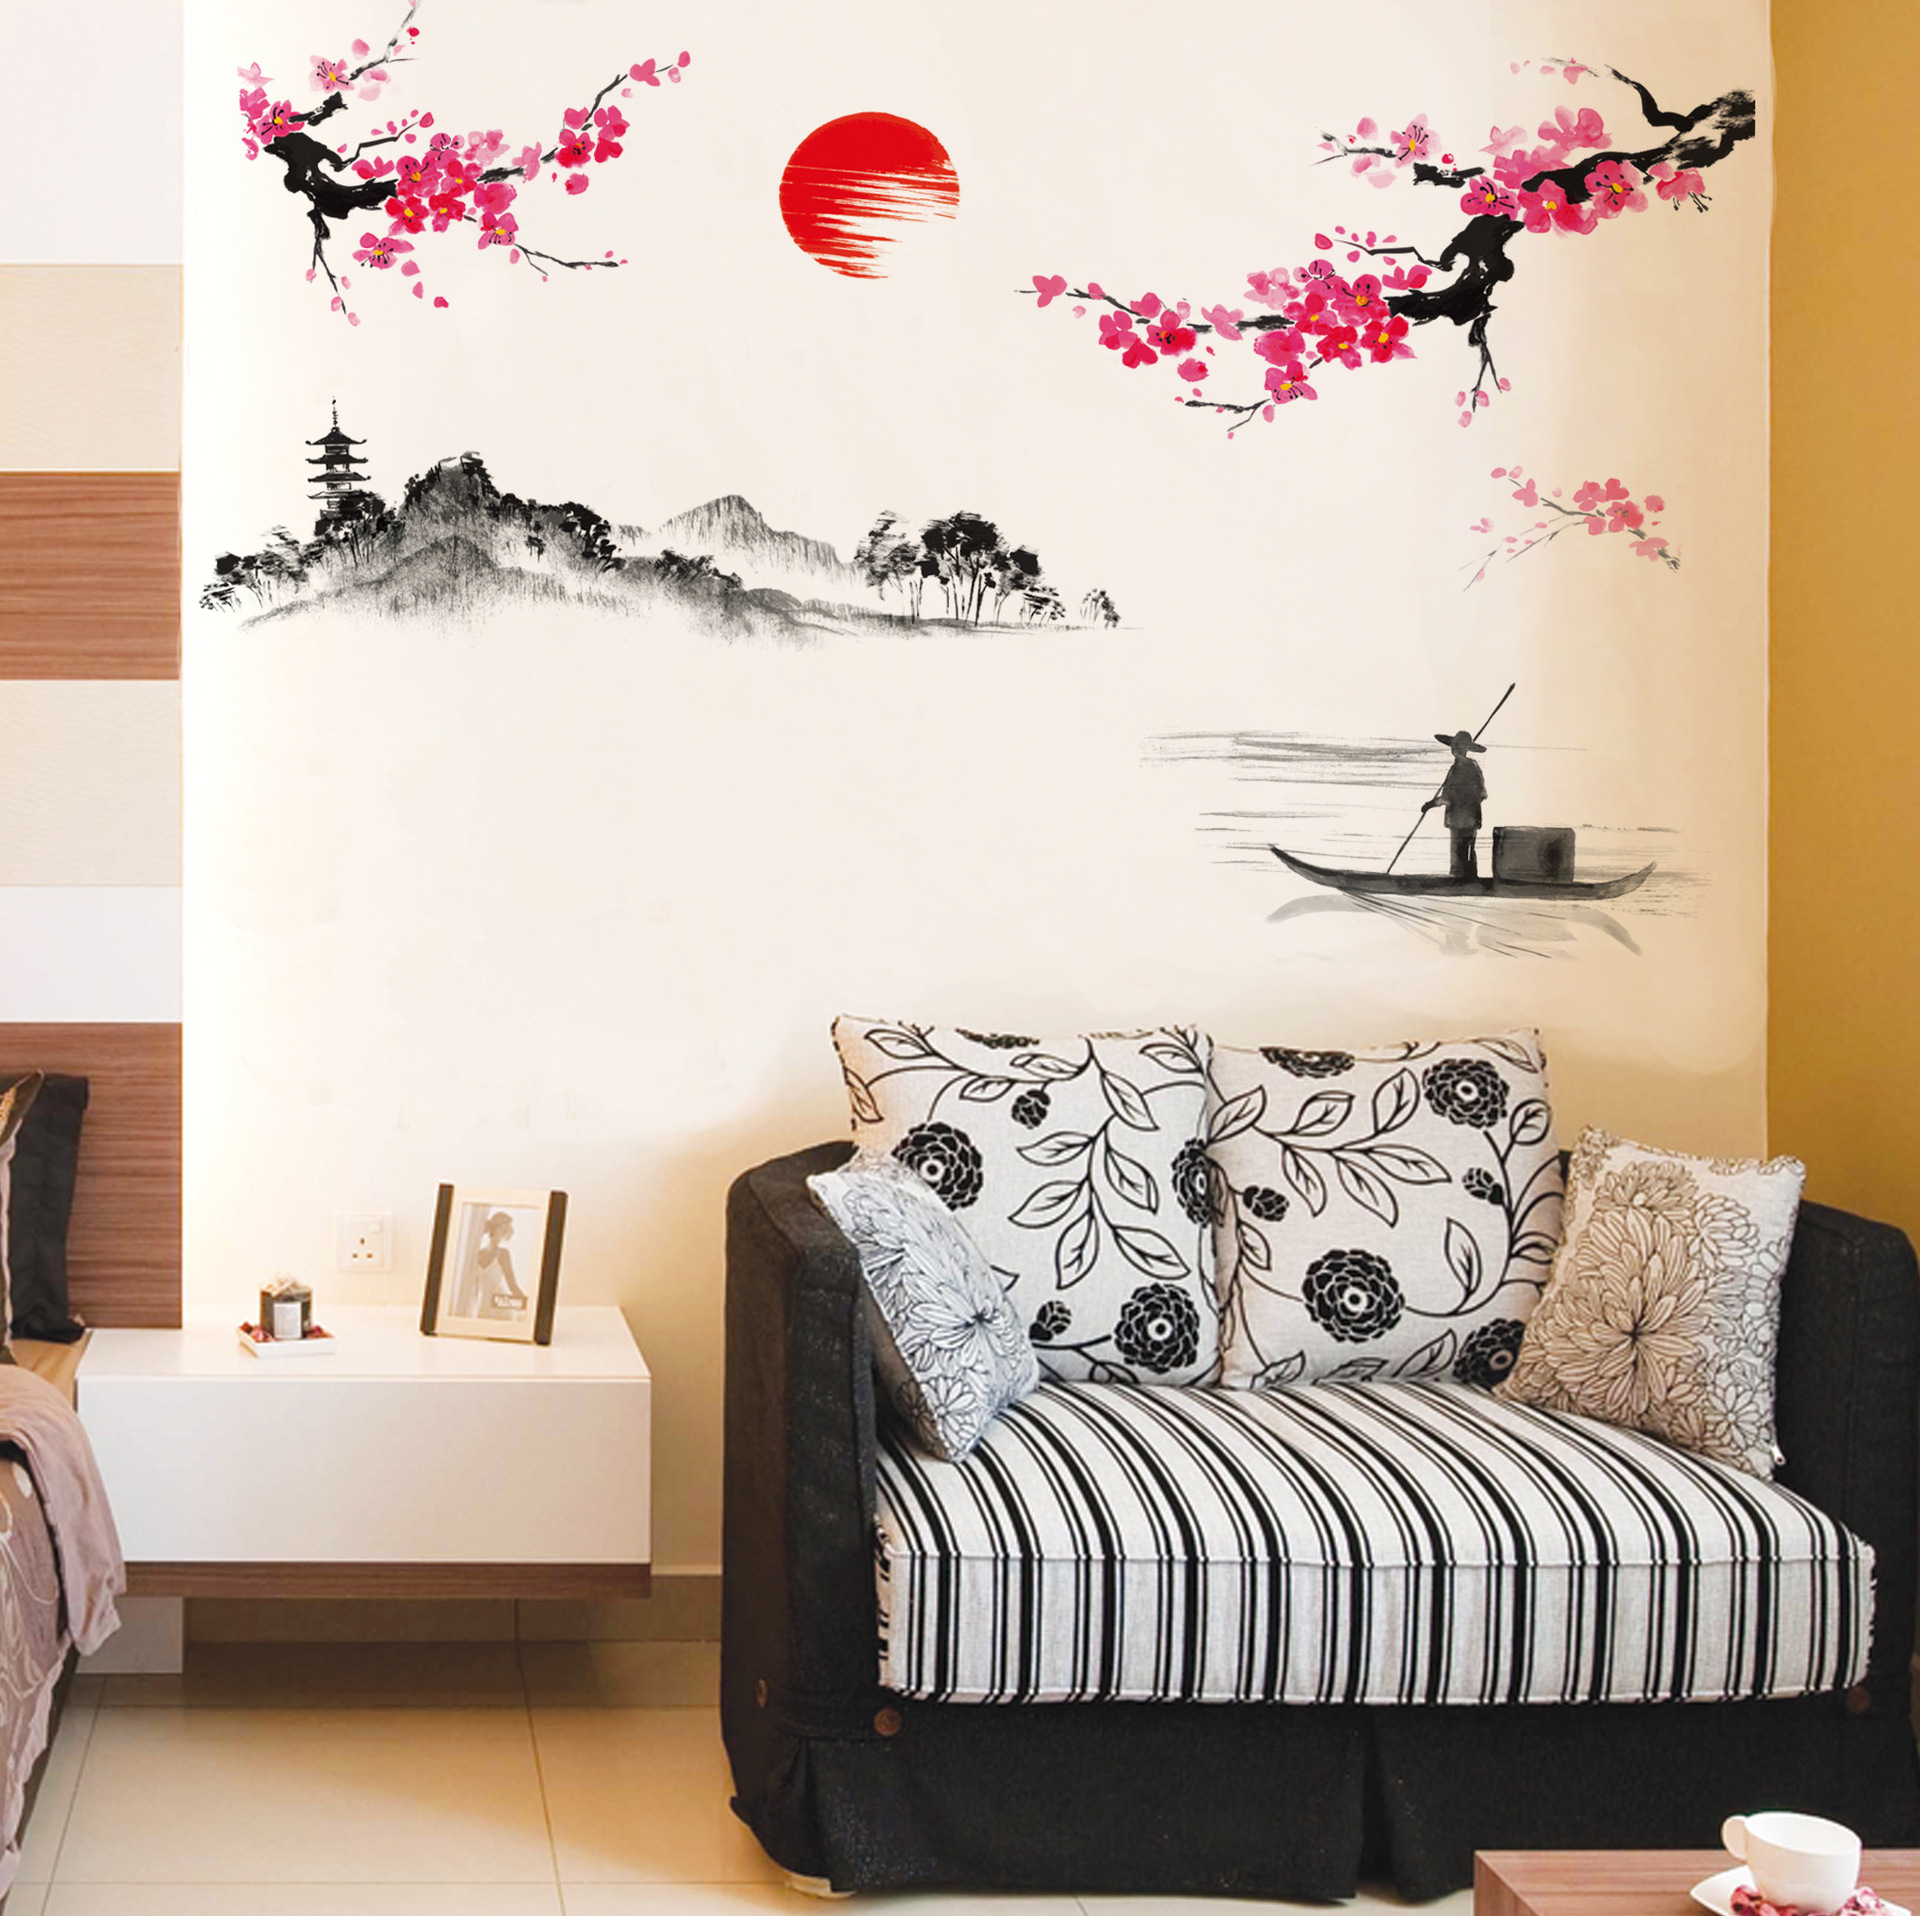 120150cm Diy Chinese Style Red Plum Flower Vintage Poster Wall